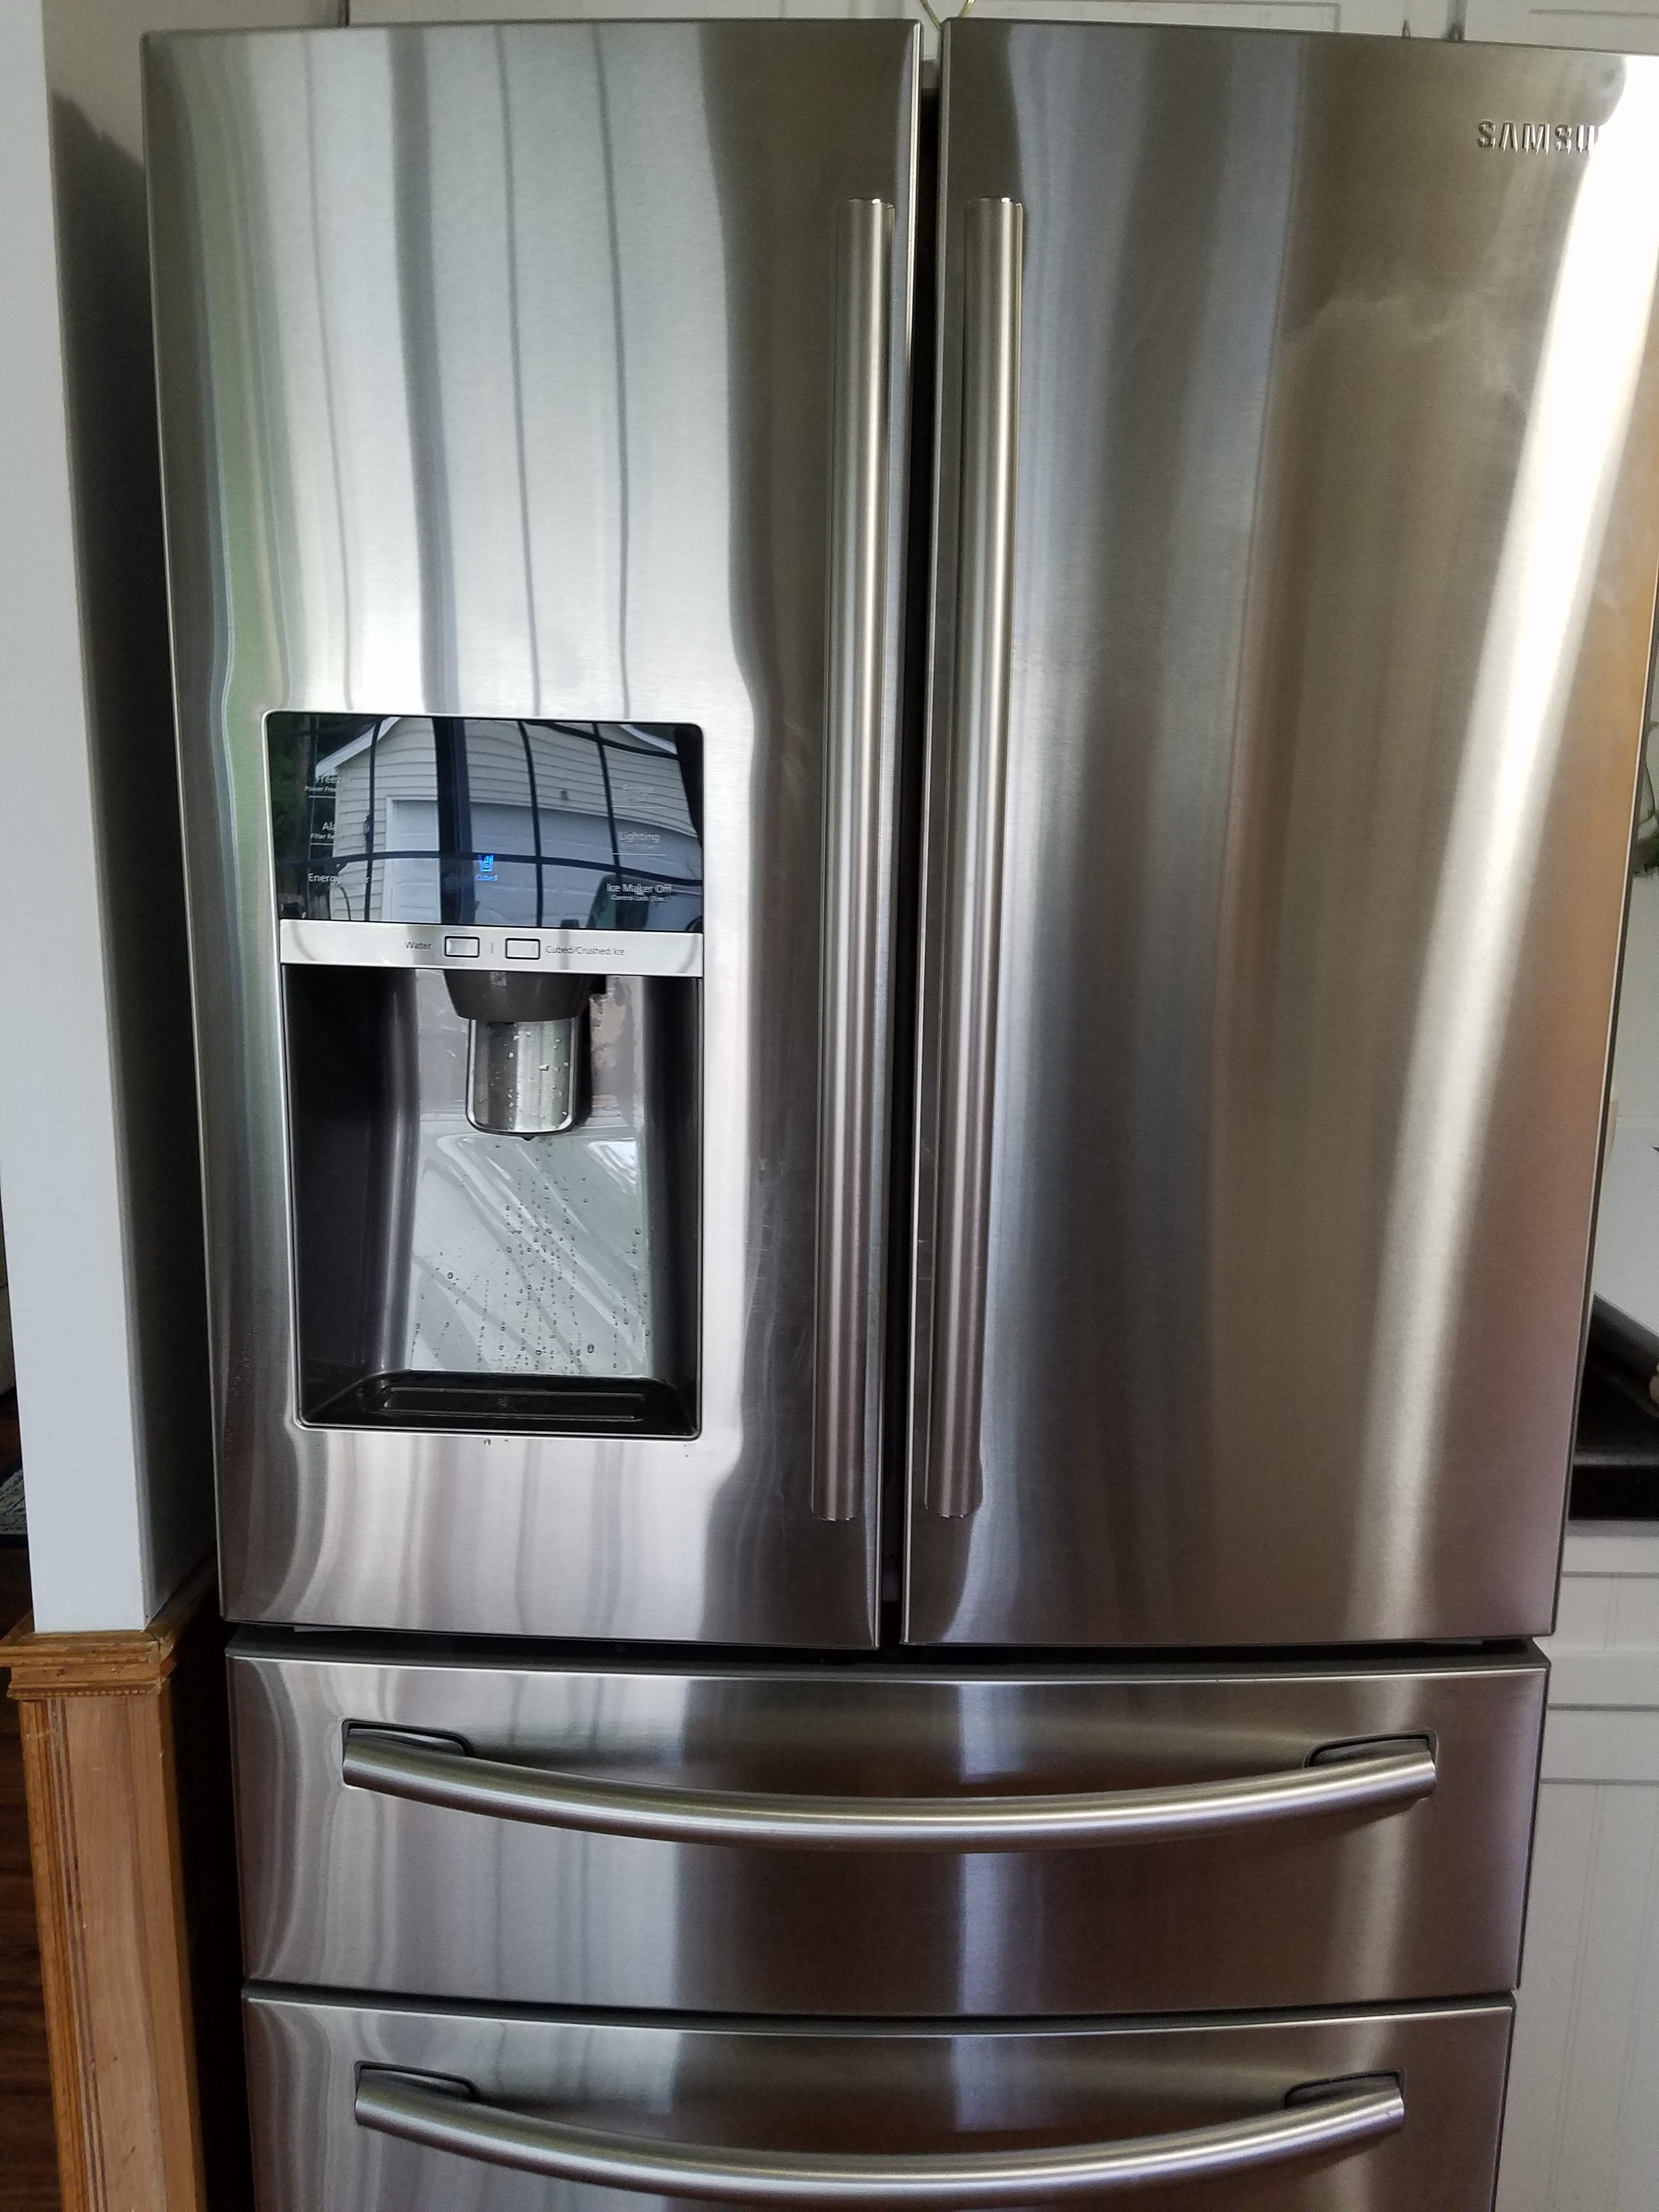 High End Fridges Top 2532 Reviews And Complaints About Samsung Refrigerator